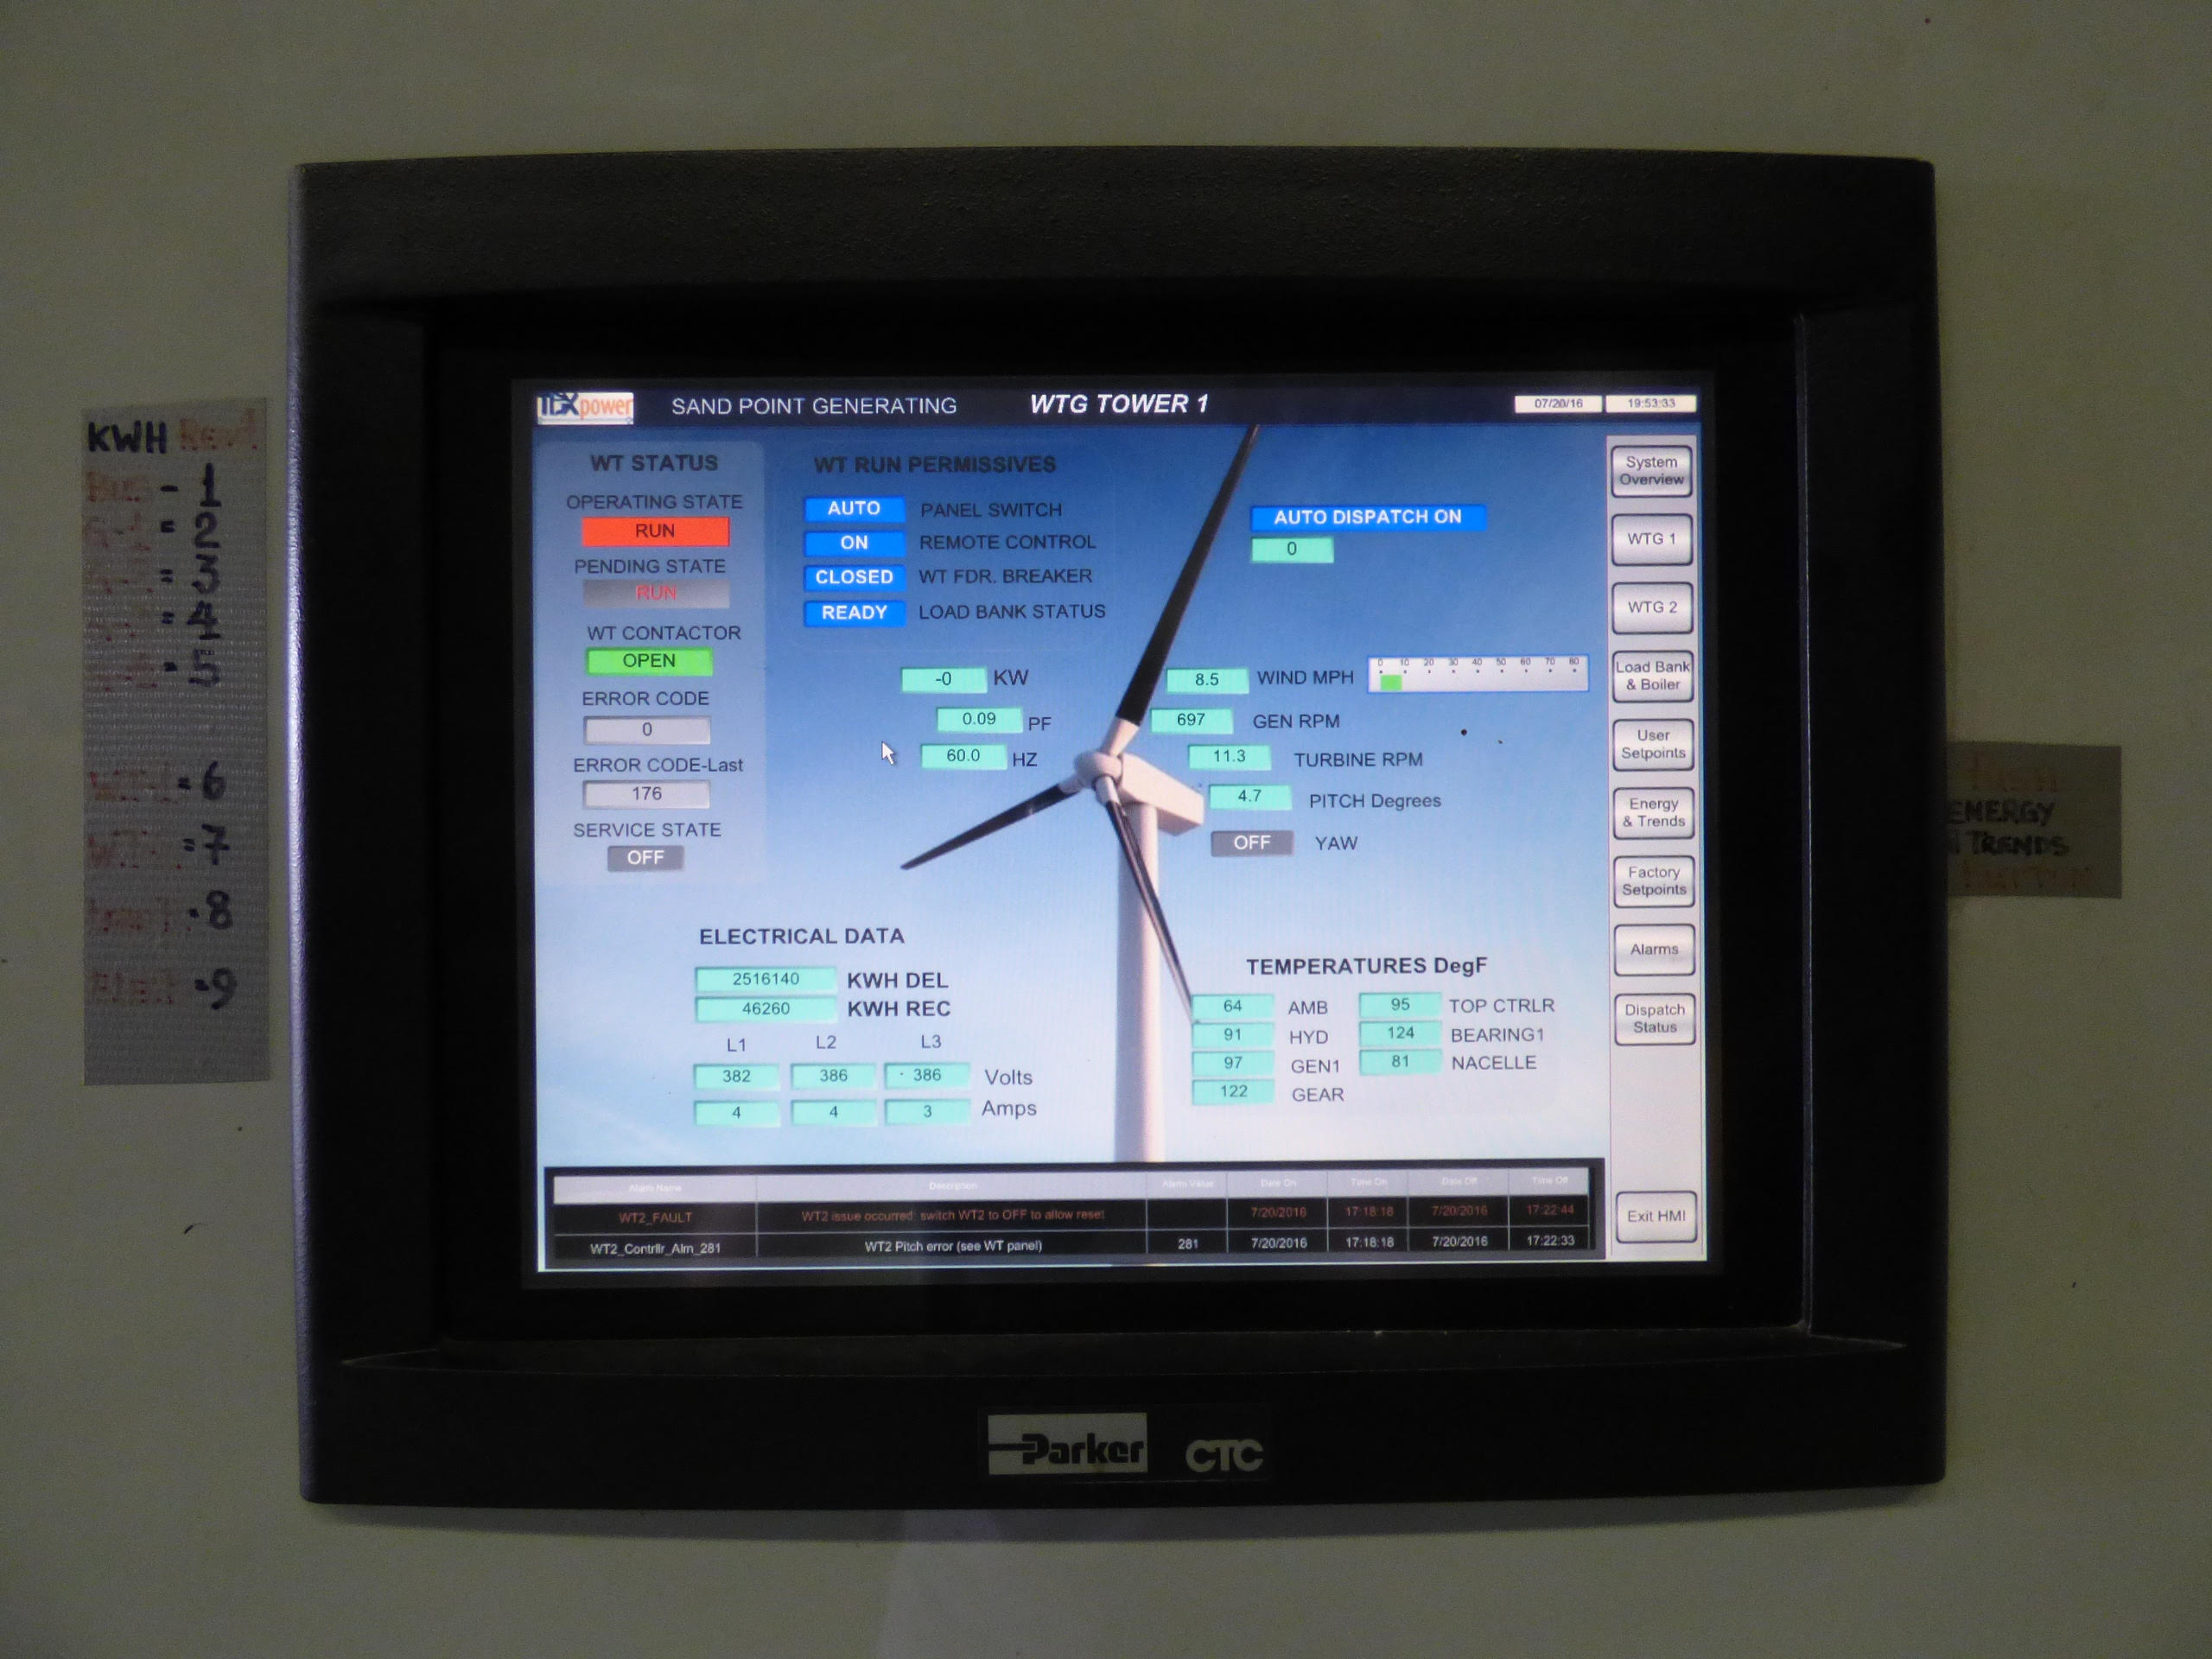 A screen showing the status of one of the wind turbines at Sand Point (Photo by Zoe Sobel, Alaska's Energy Desk - Unlaska)